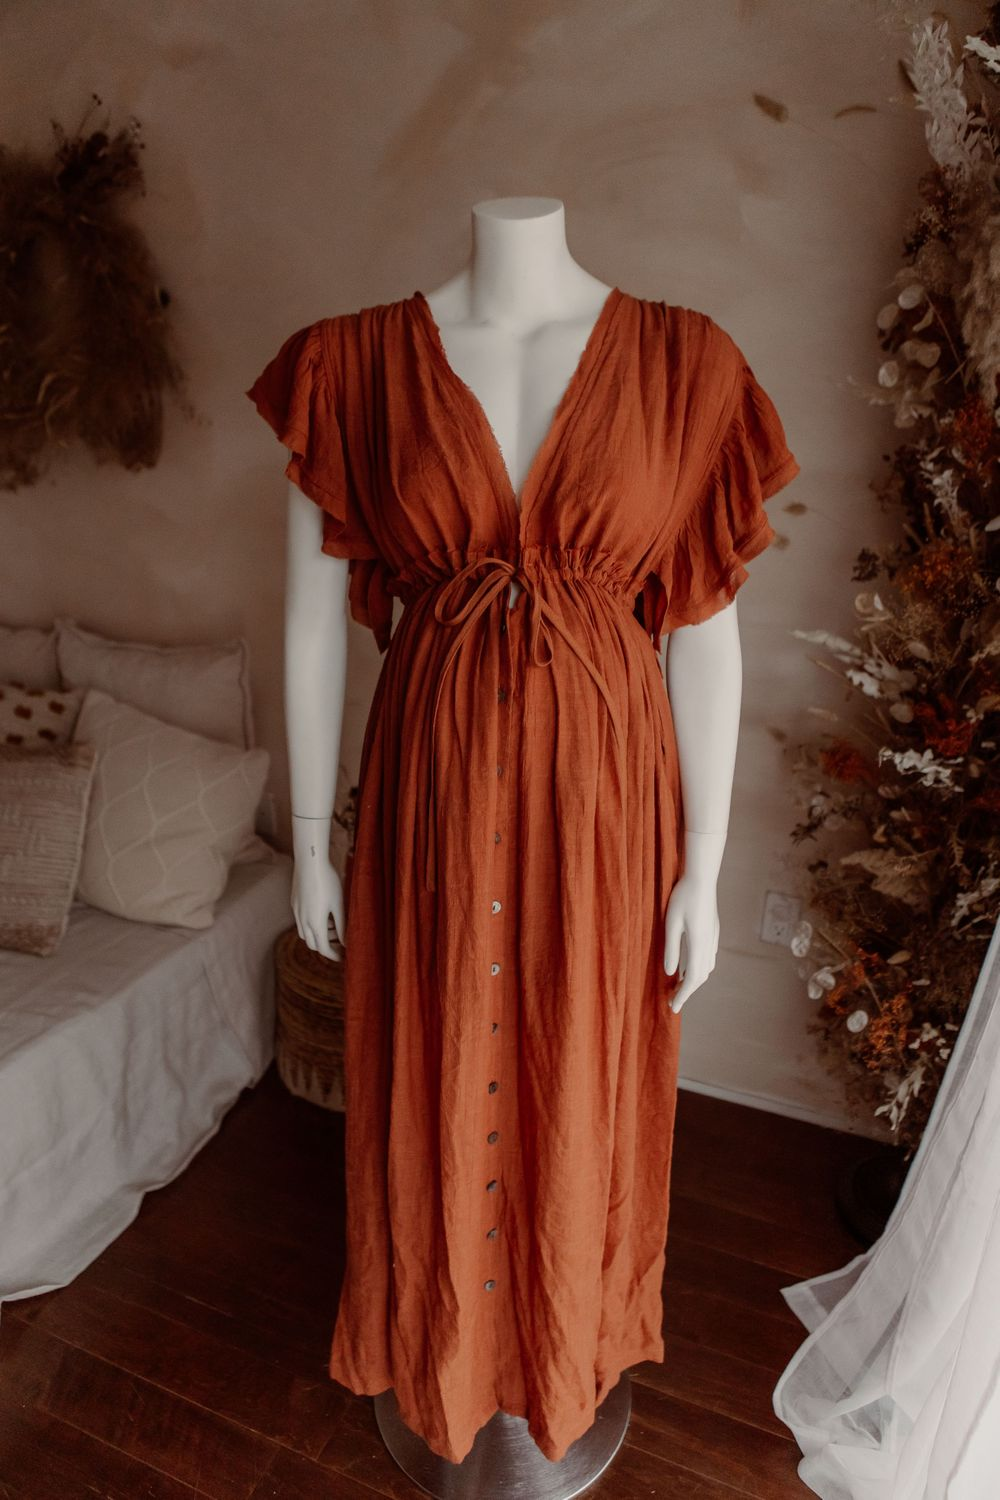 Size M Rust Maxi - Versatile and will fit sizes M-1XL